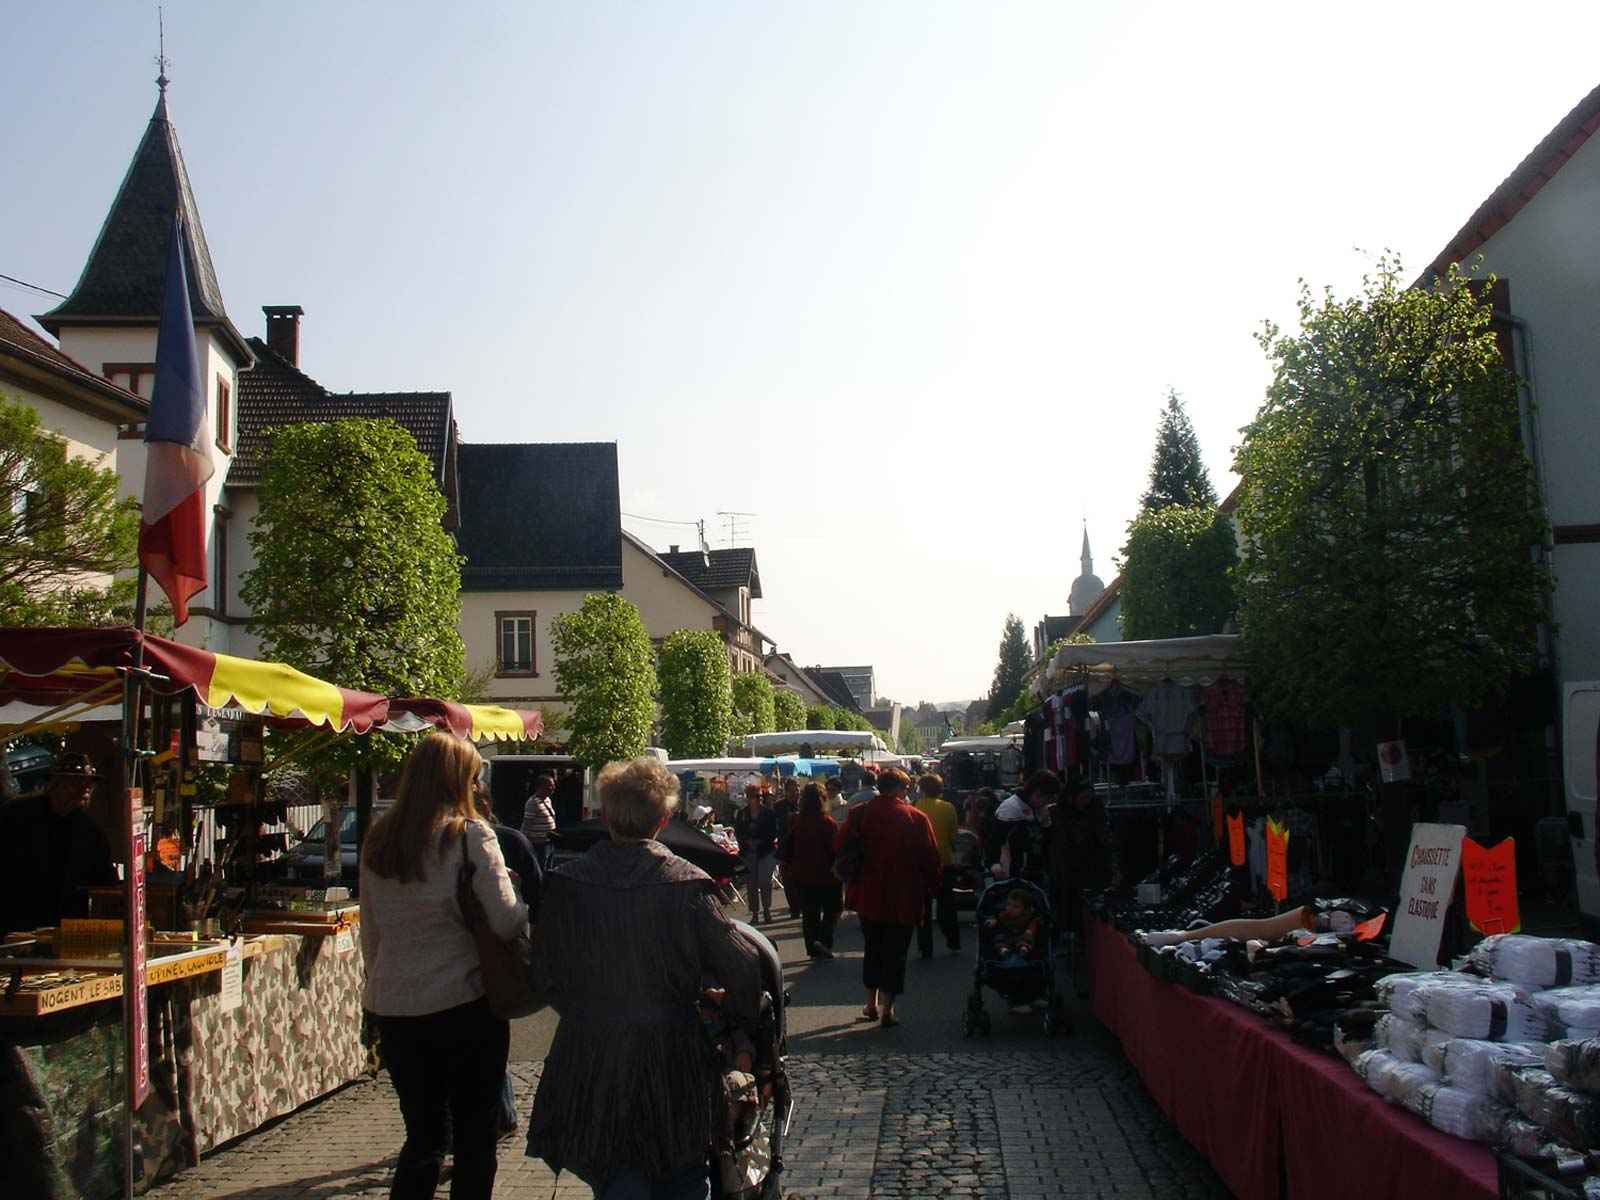 https://apps.tourisme-alsace.info/photos/niederbronn/photos/foire-Reichshoffen.jpg